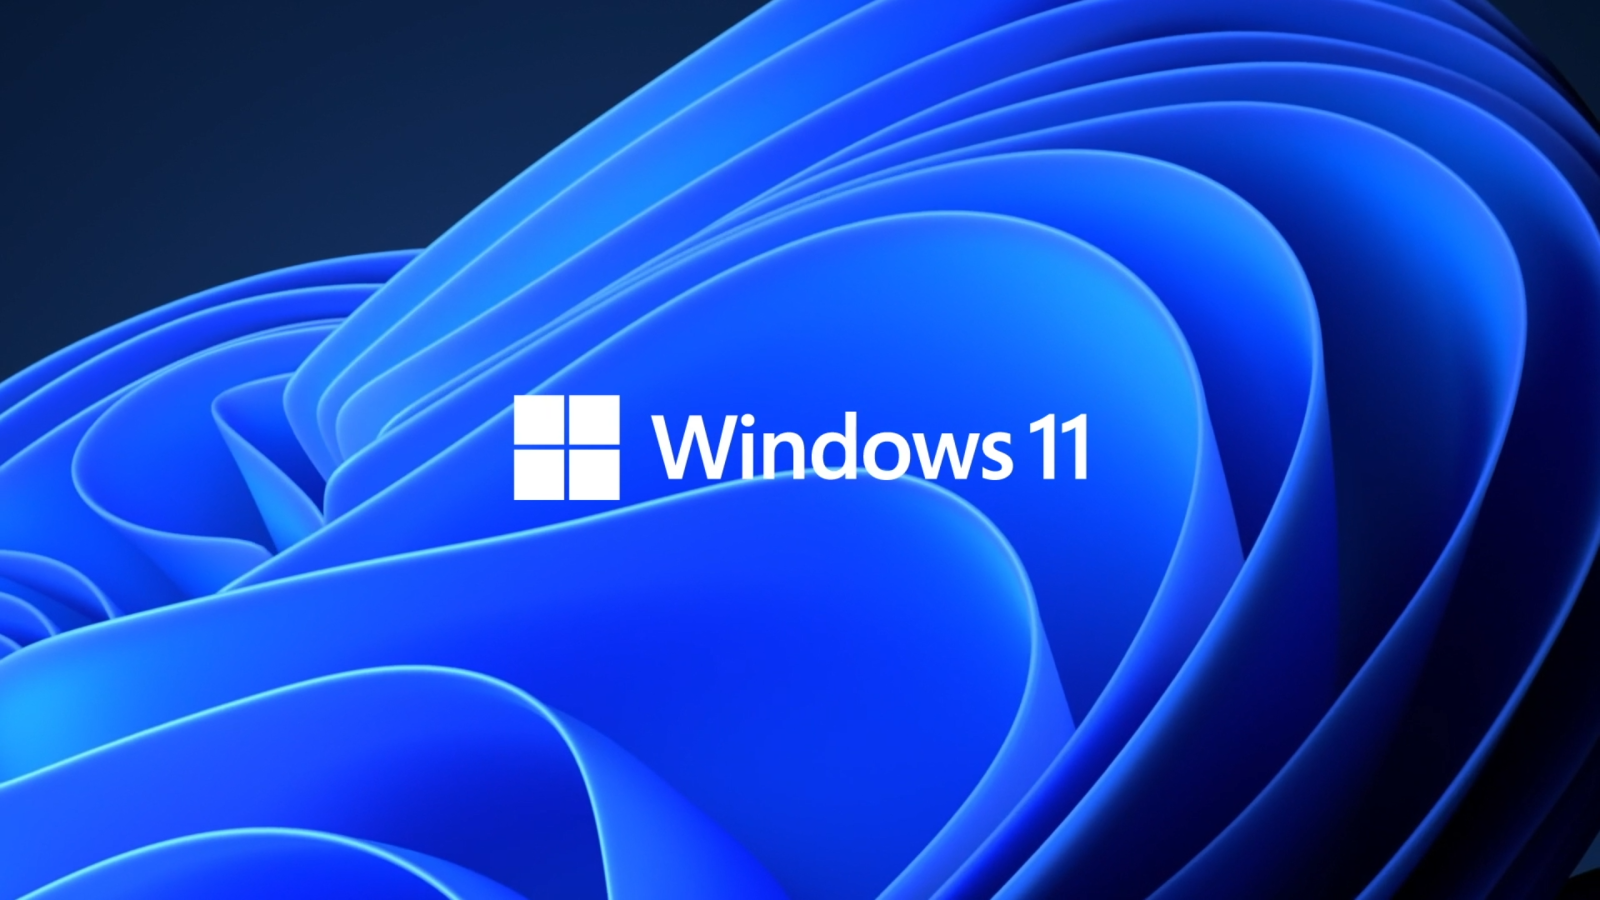 Microsoft's new OS Windows 11 starts rolling out today